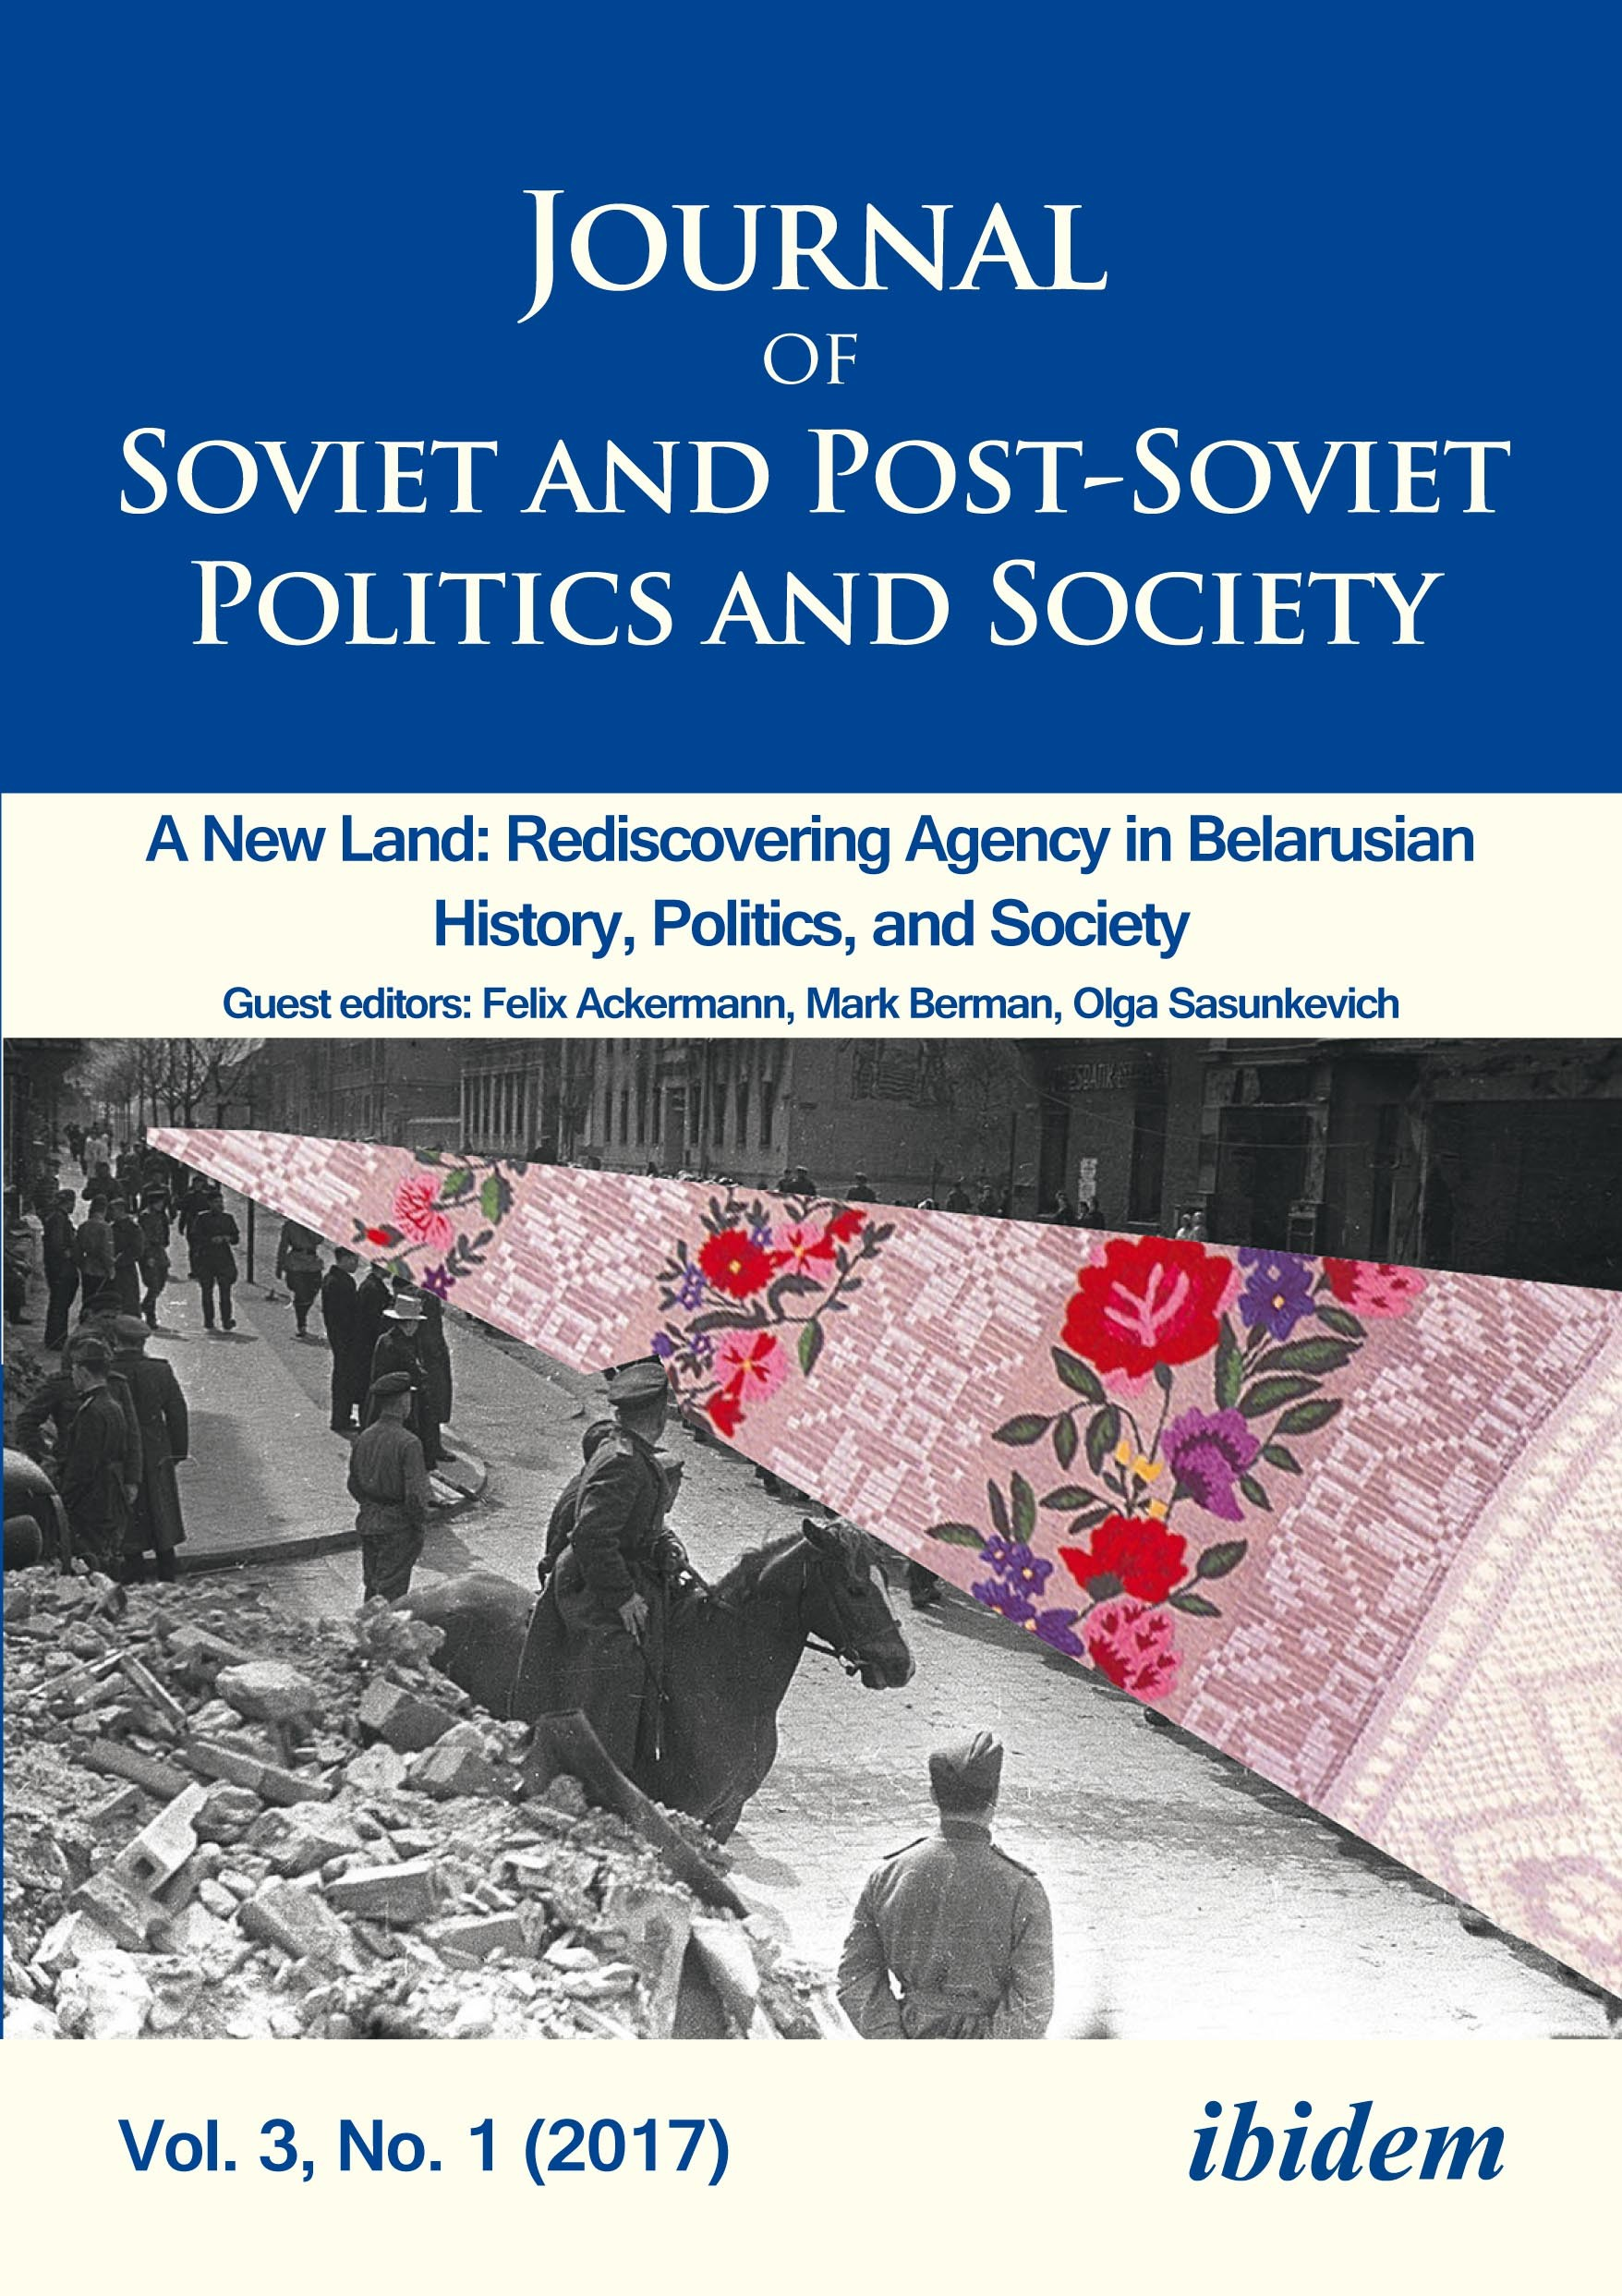 Journal of Soviet and Post-Soviet Politics and Society